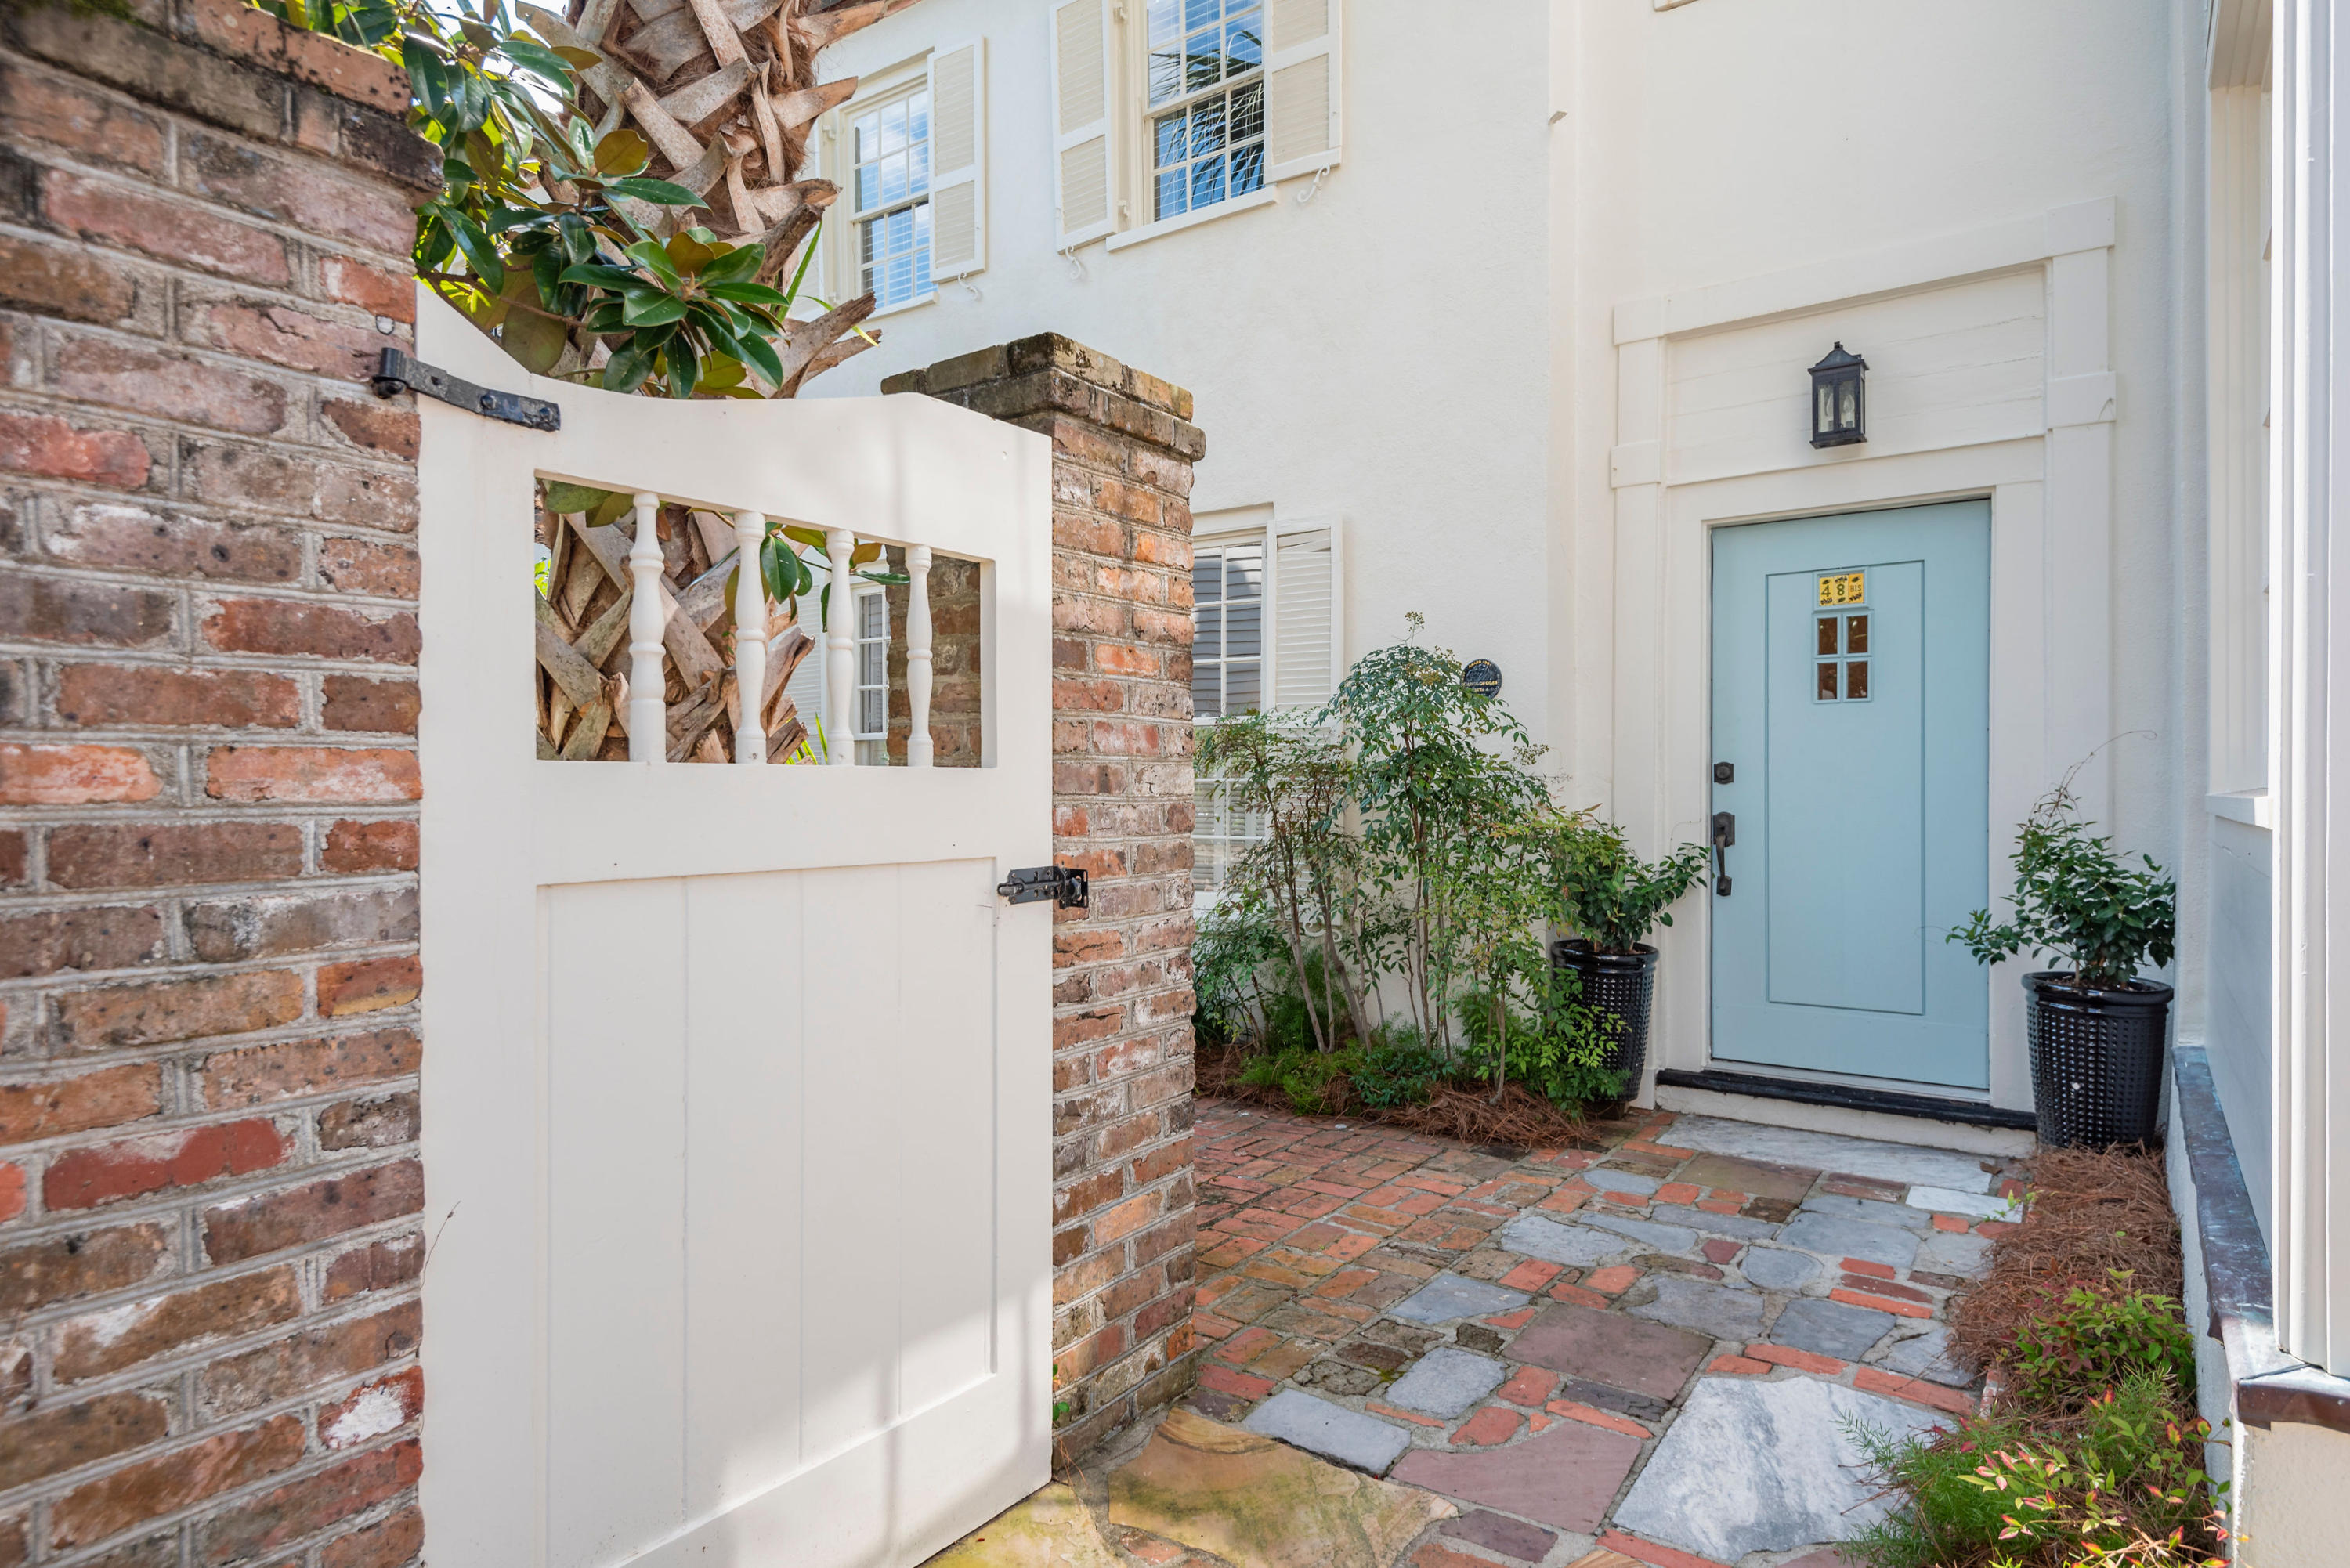 South of Broad Homes For Sale - 48 South Battery, Charleston, SC - 89